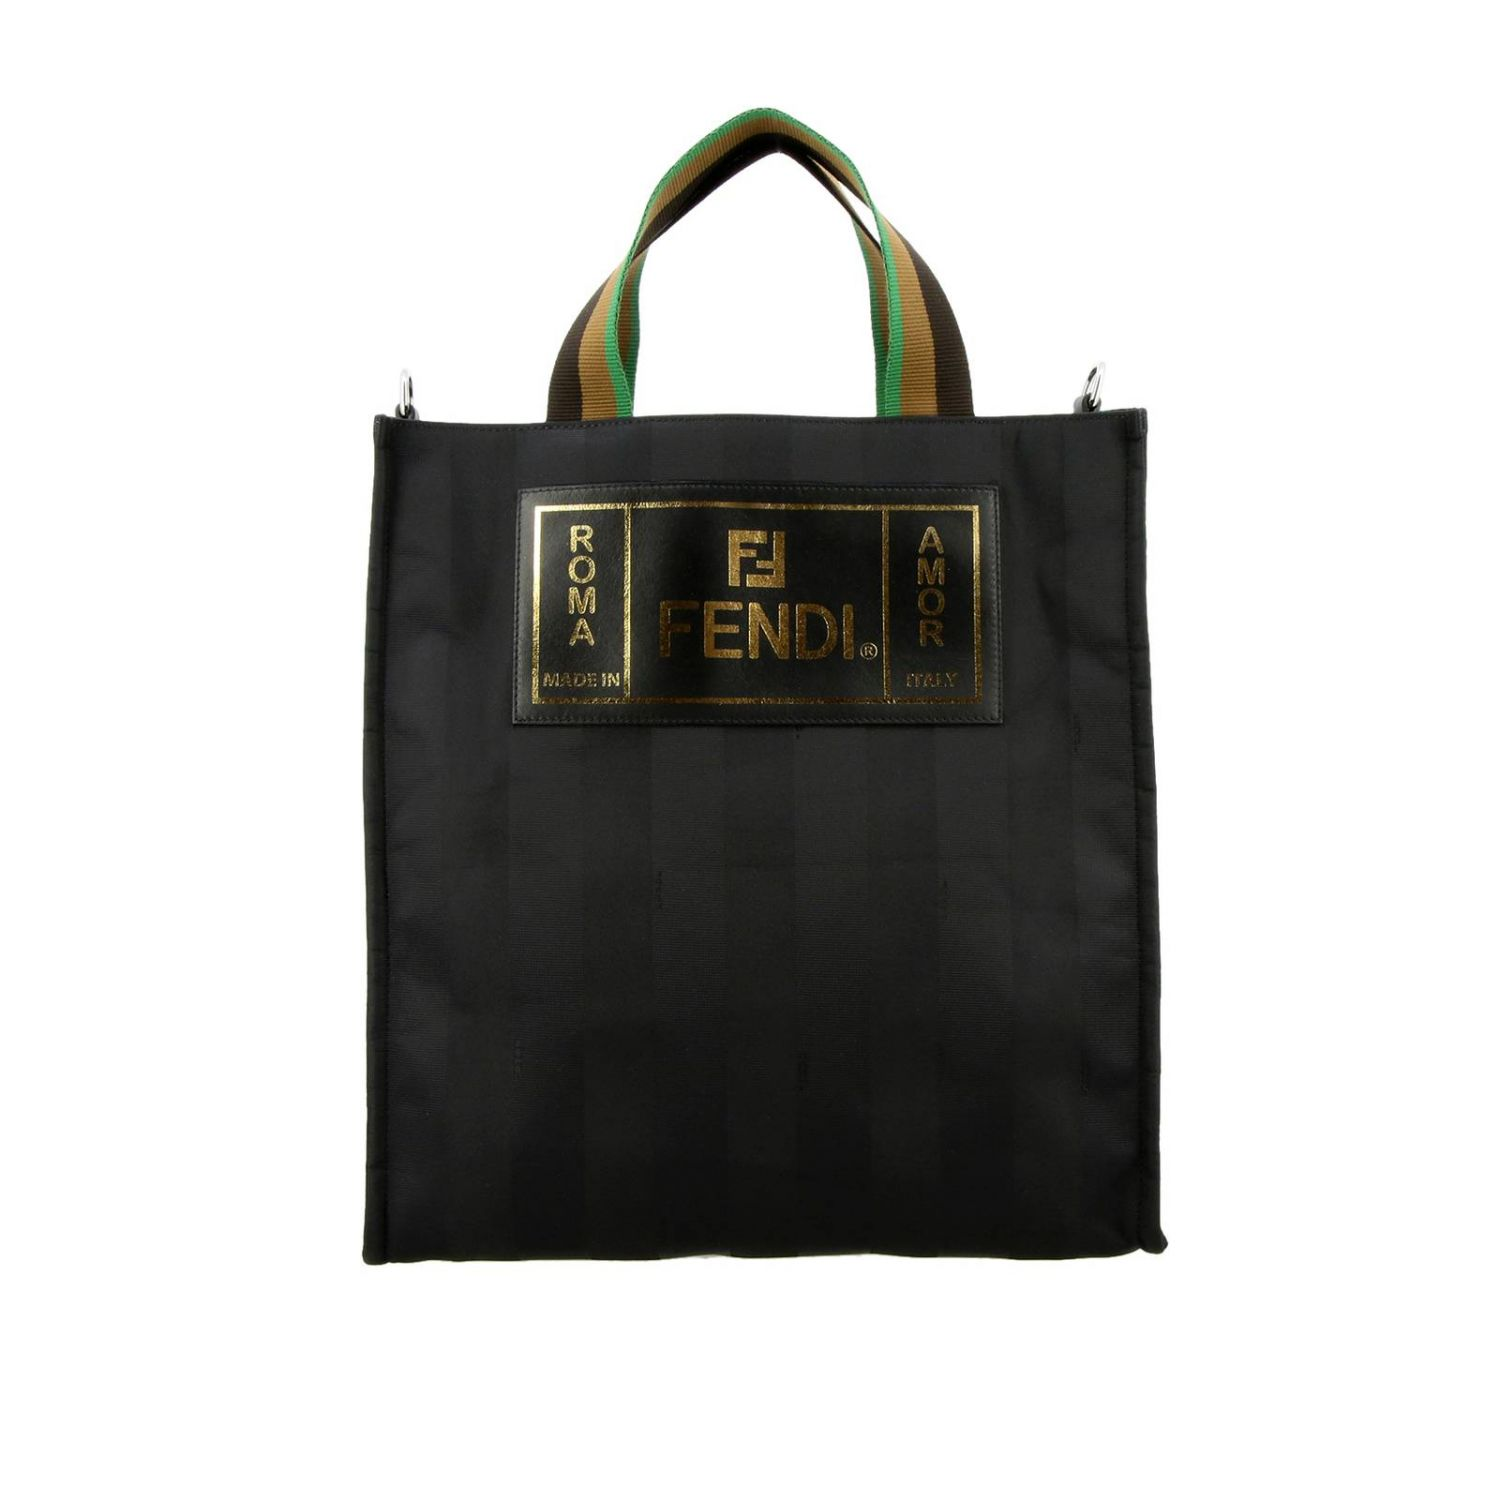 Bags men Fendi black 1